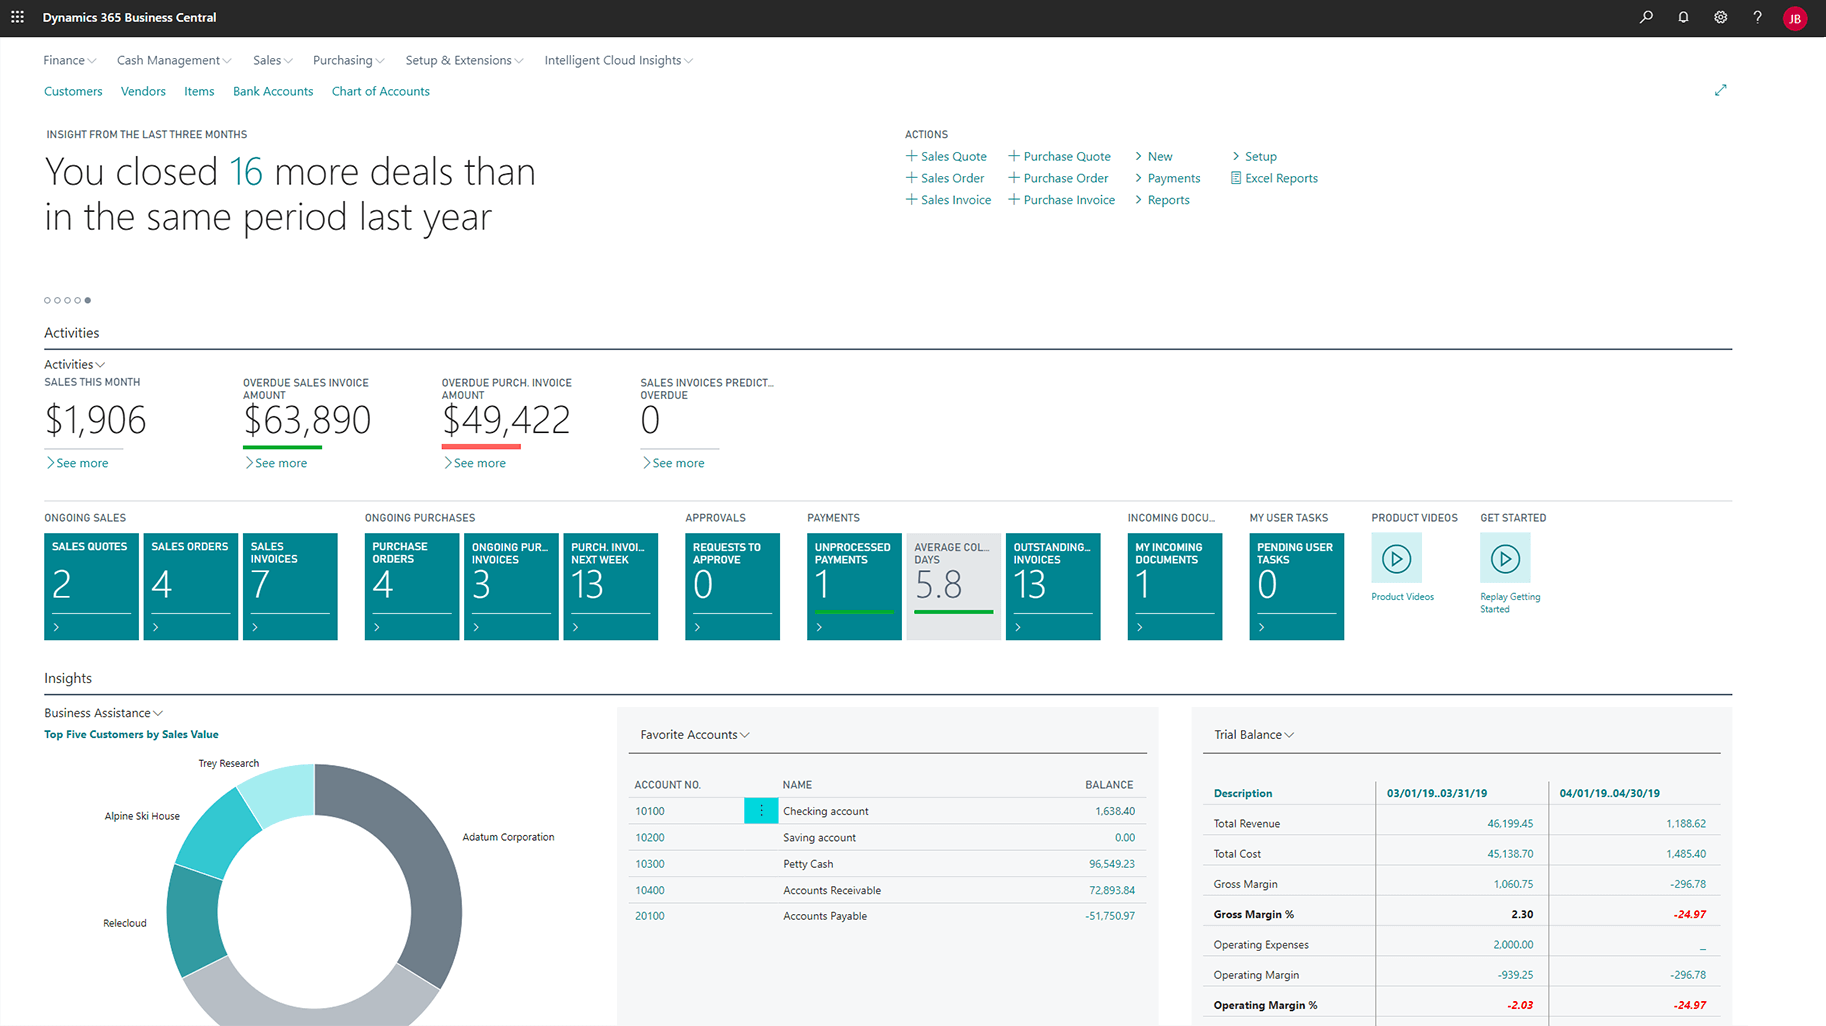 Microsoft Dynamics 365 Business Central insights